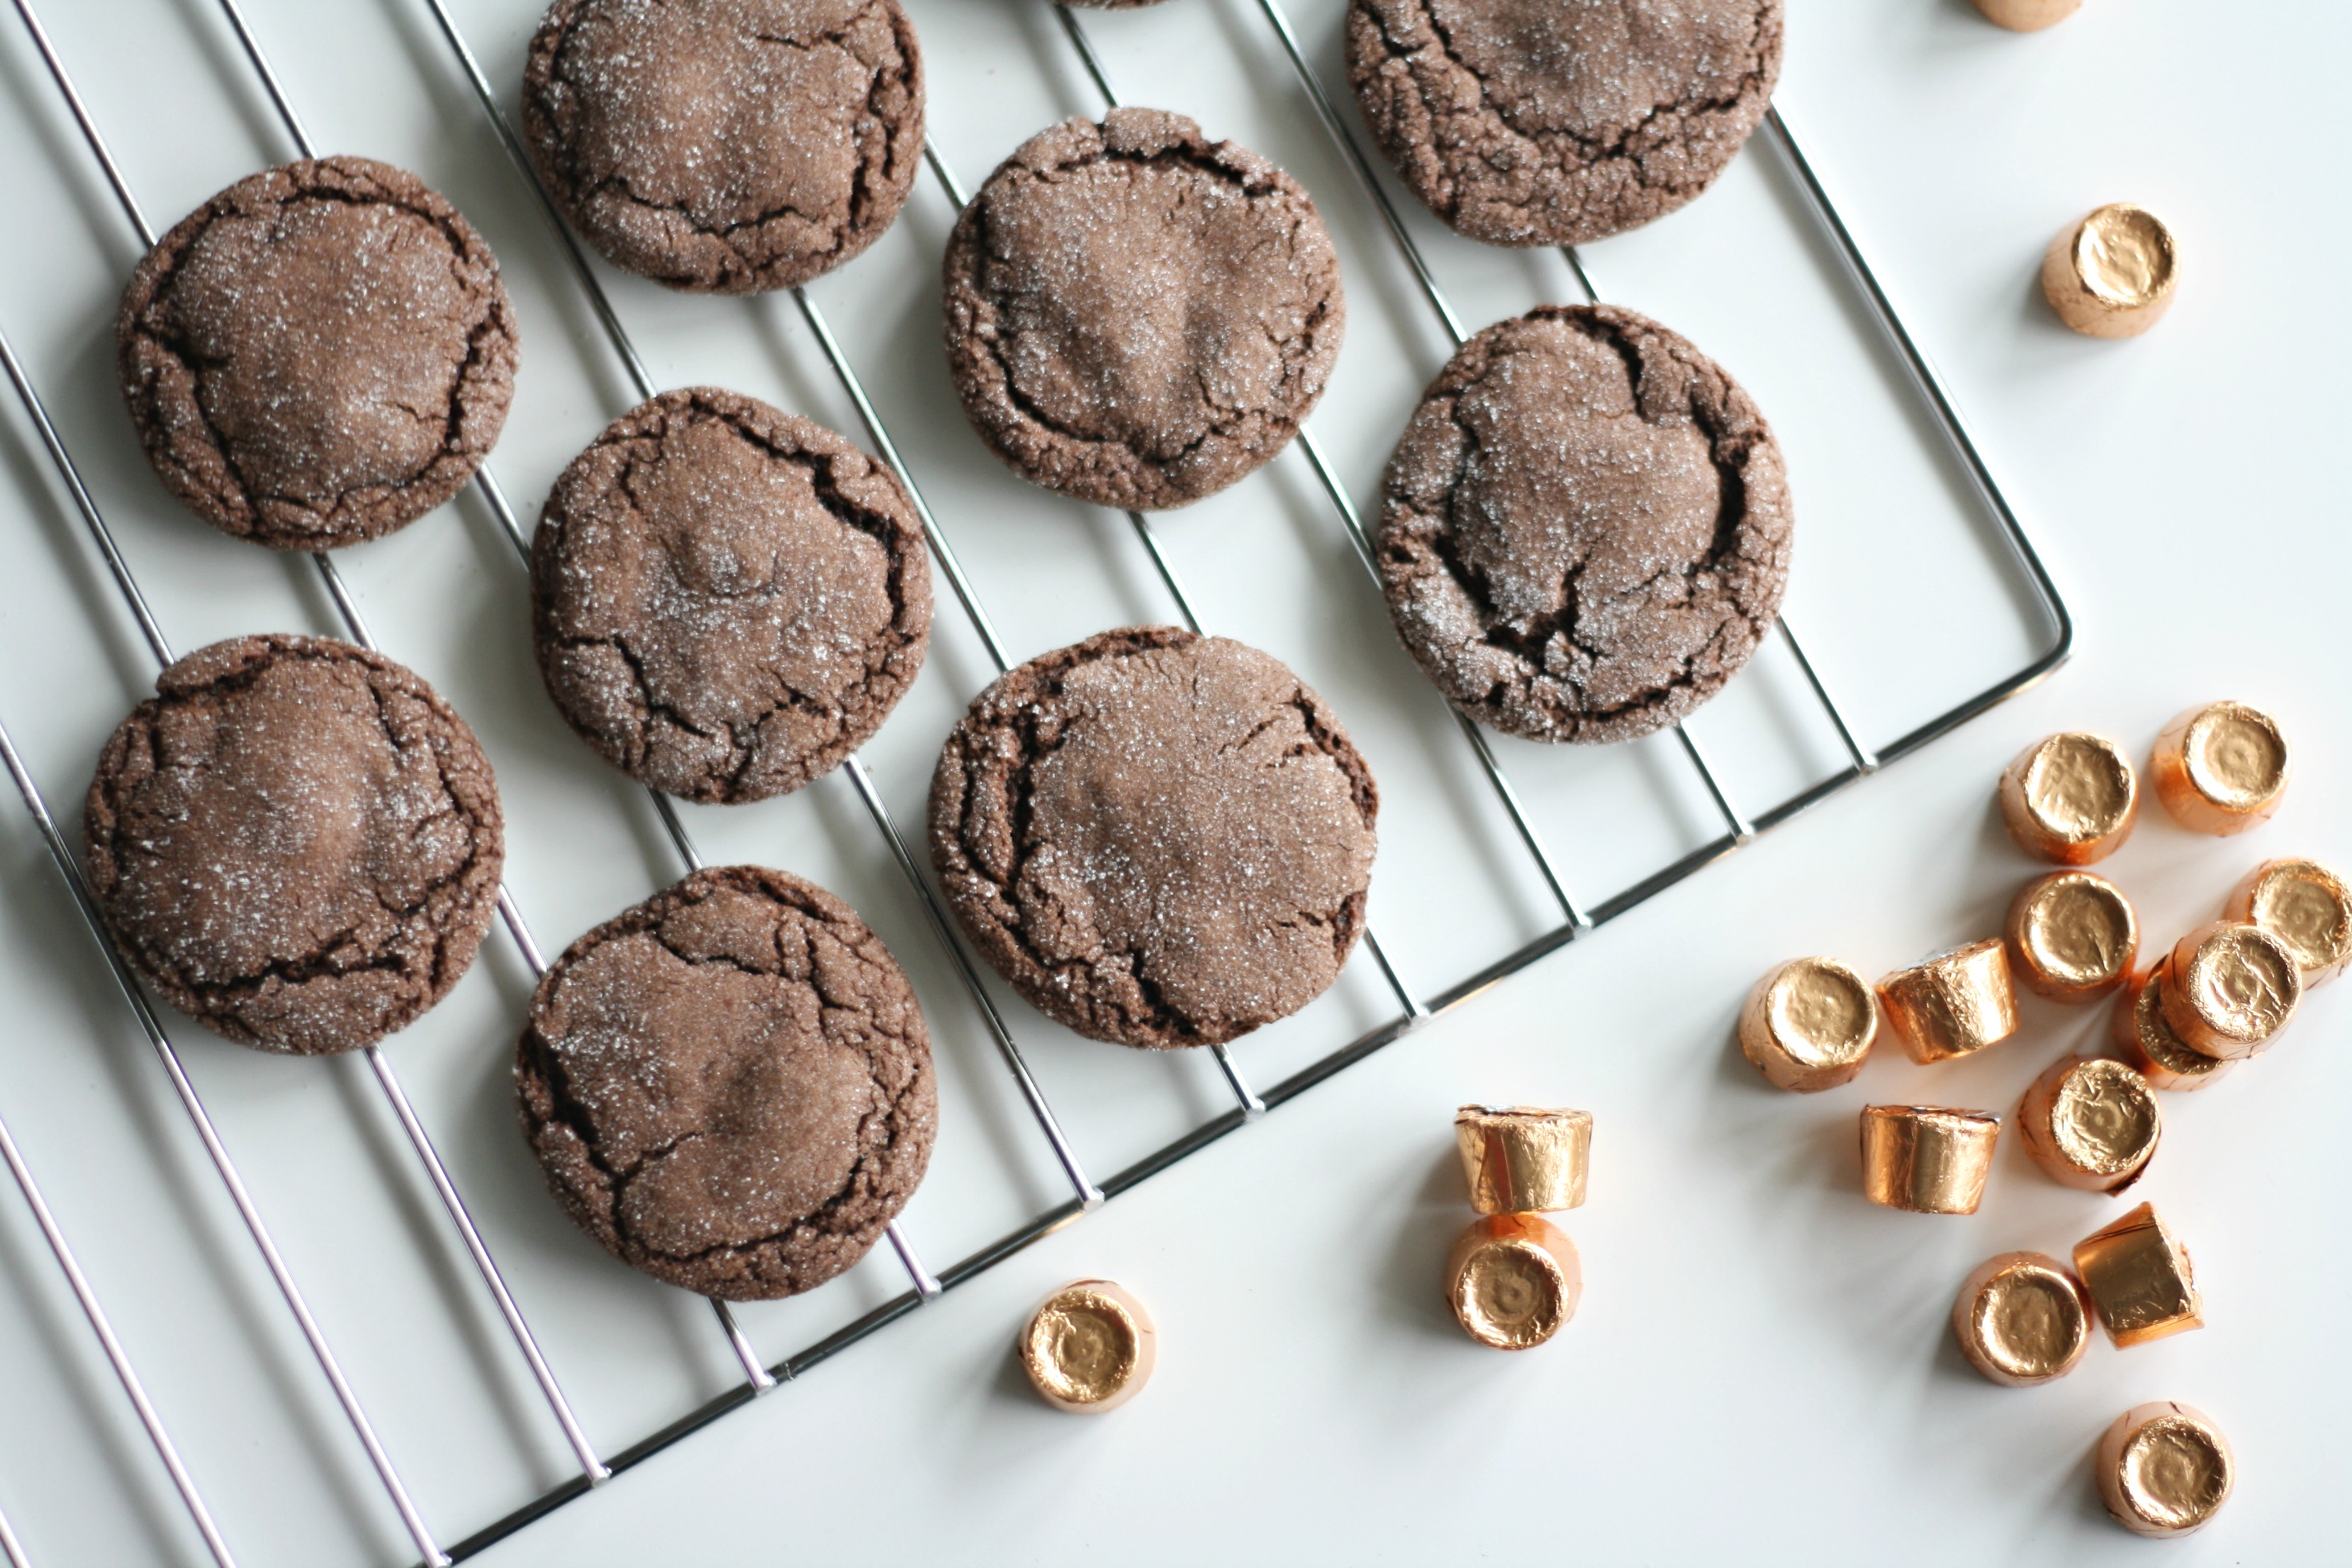 Follow this simple recipe (only requires five ingredients!) to make the most delicious chocolatey and gooey Rolo cookies!